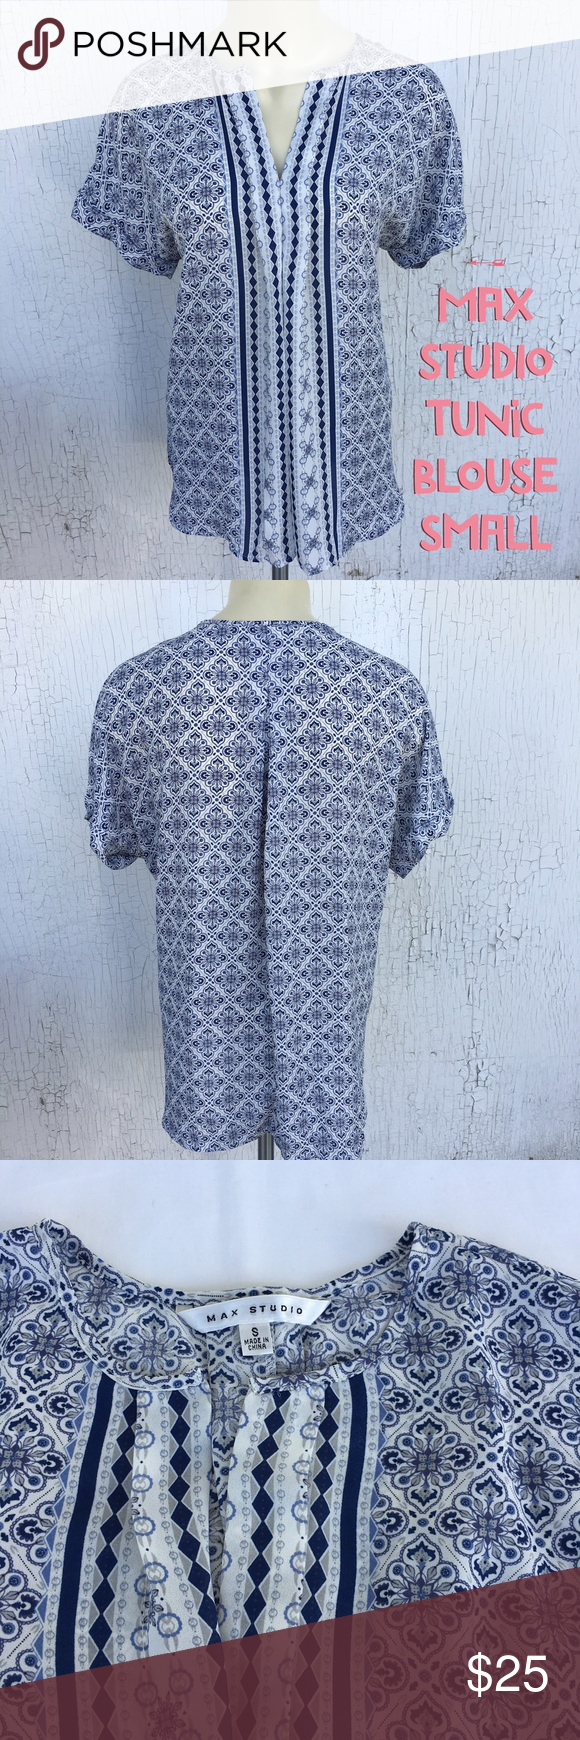 "MAXSTUDIO Tunic Short Sleeves - SMALL Max Studio Printed Tunic Oversized Sheer Blouse  Size SMALL  100% Polyester   APPROX MEASUREMENTS LAYING FLAT:  Shoulder: 25"" Chest: 21"" Length: 28"" Max Studio Tops Tunics"